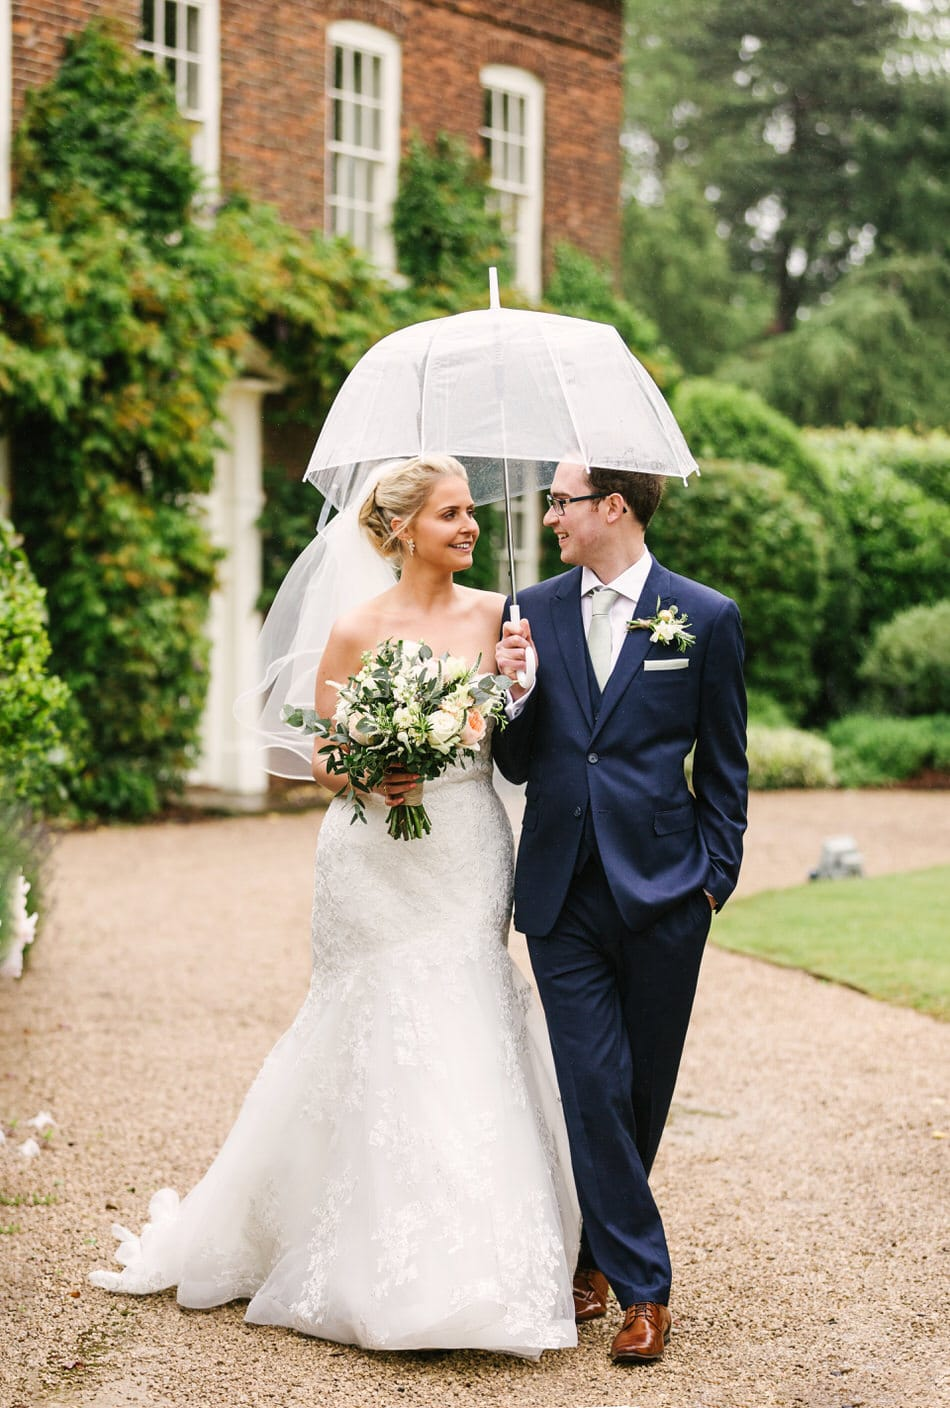 rainy wedding at Alrewas Hayes